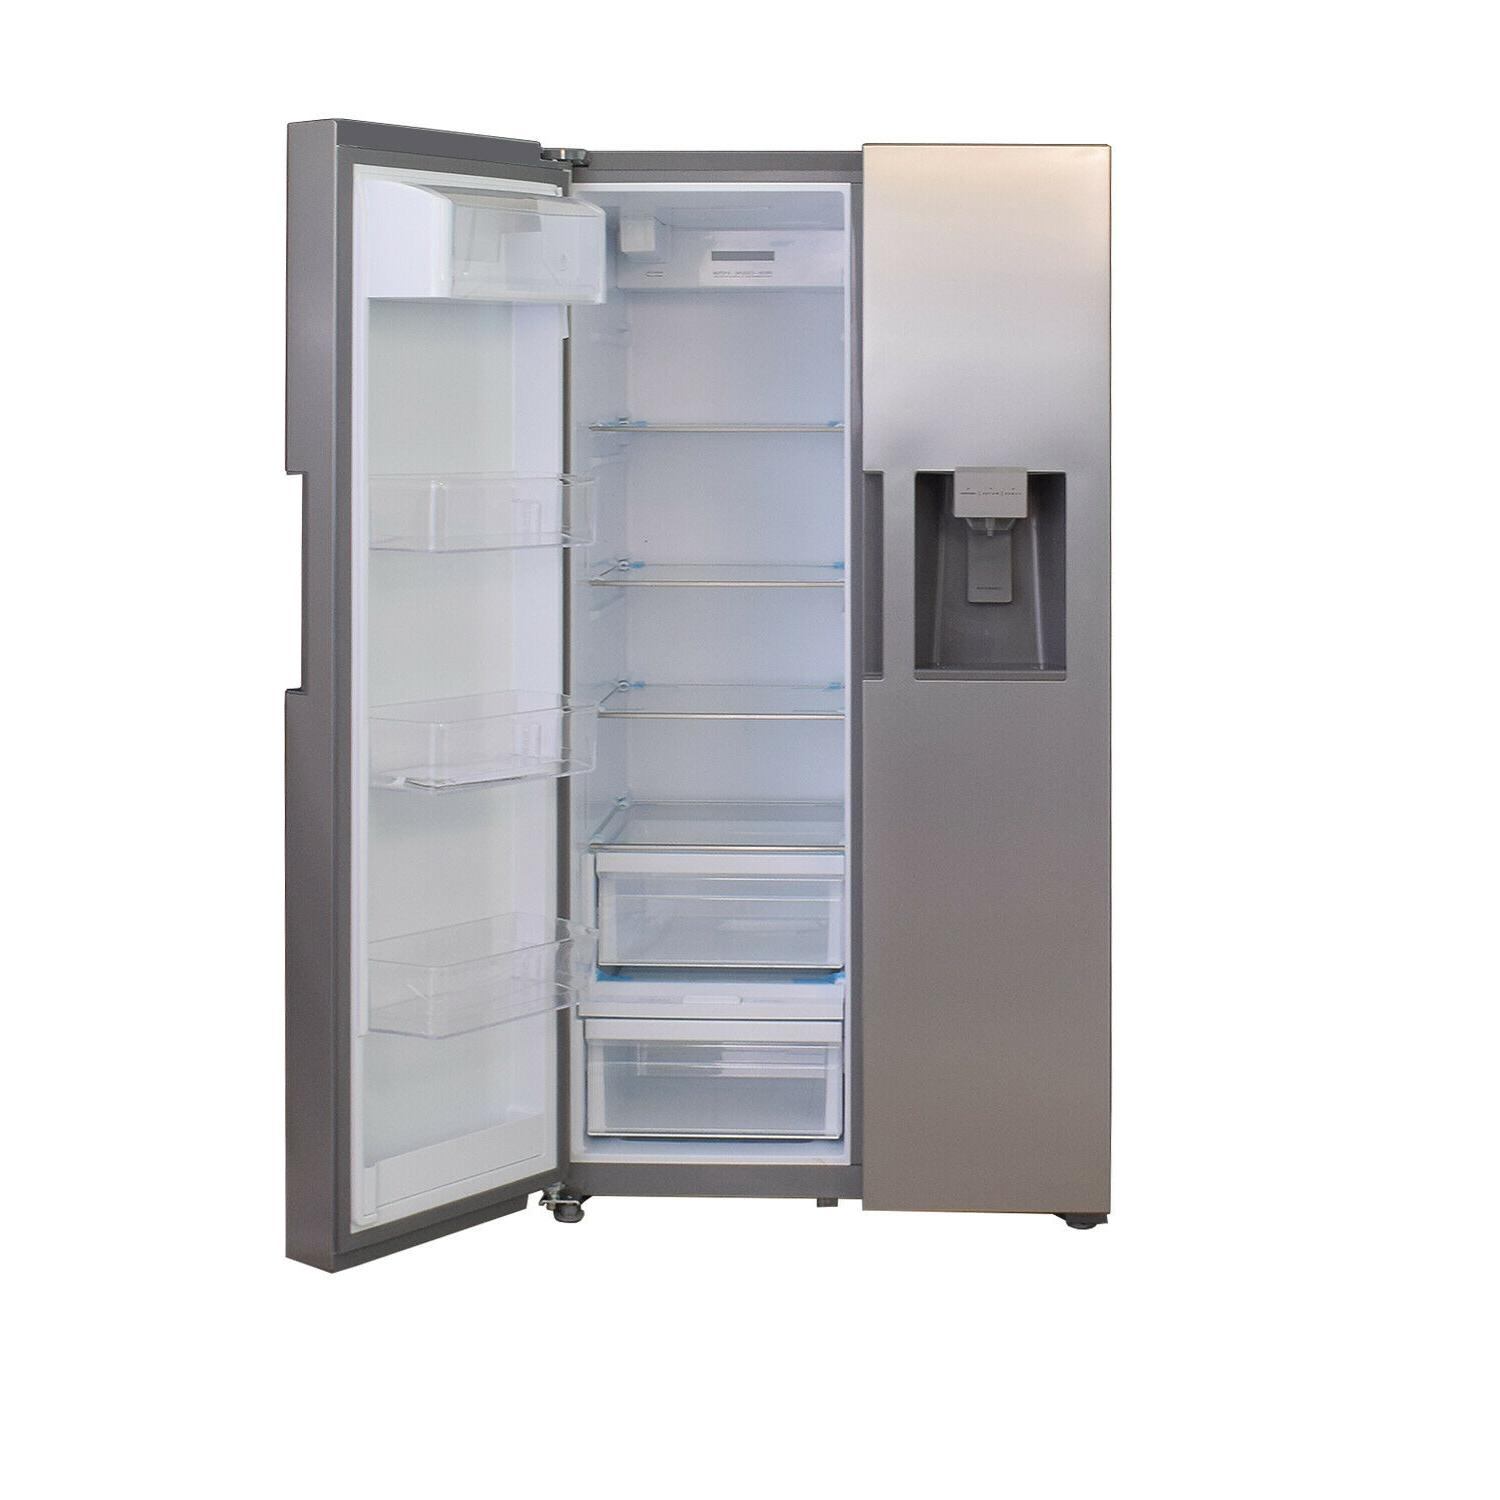 Counter Depth French Door Refrigerator Freezer Side-by-Side